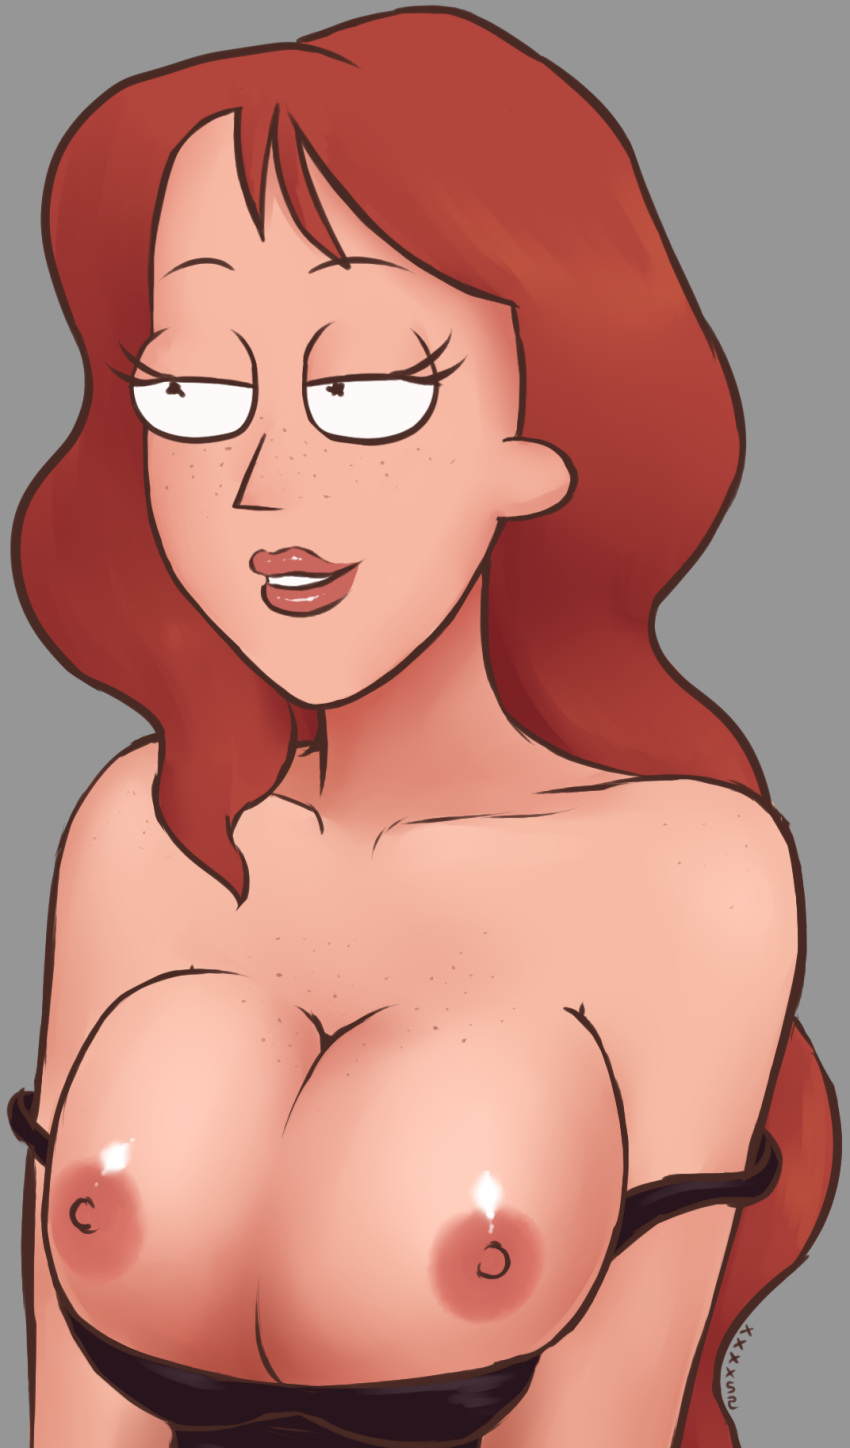 rick gifs season and 3 morty Highschool of the dead nudes